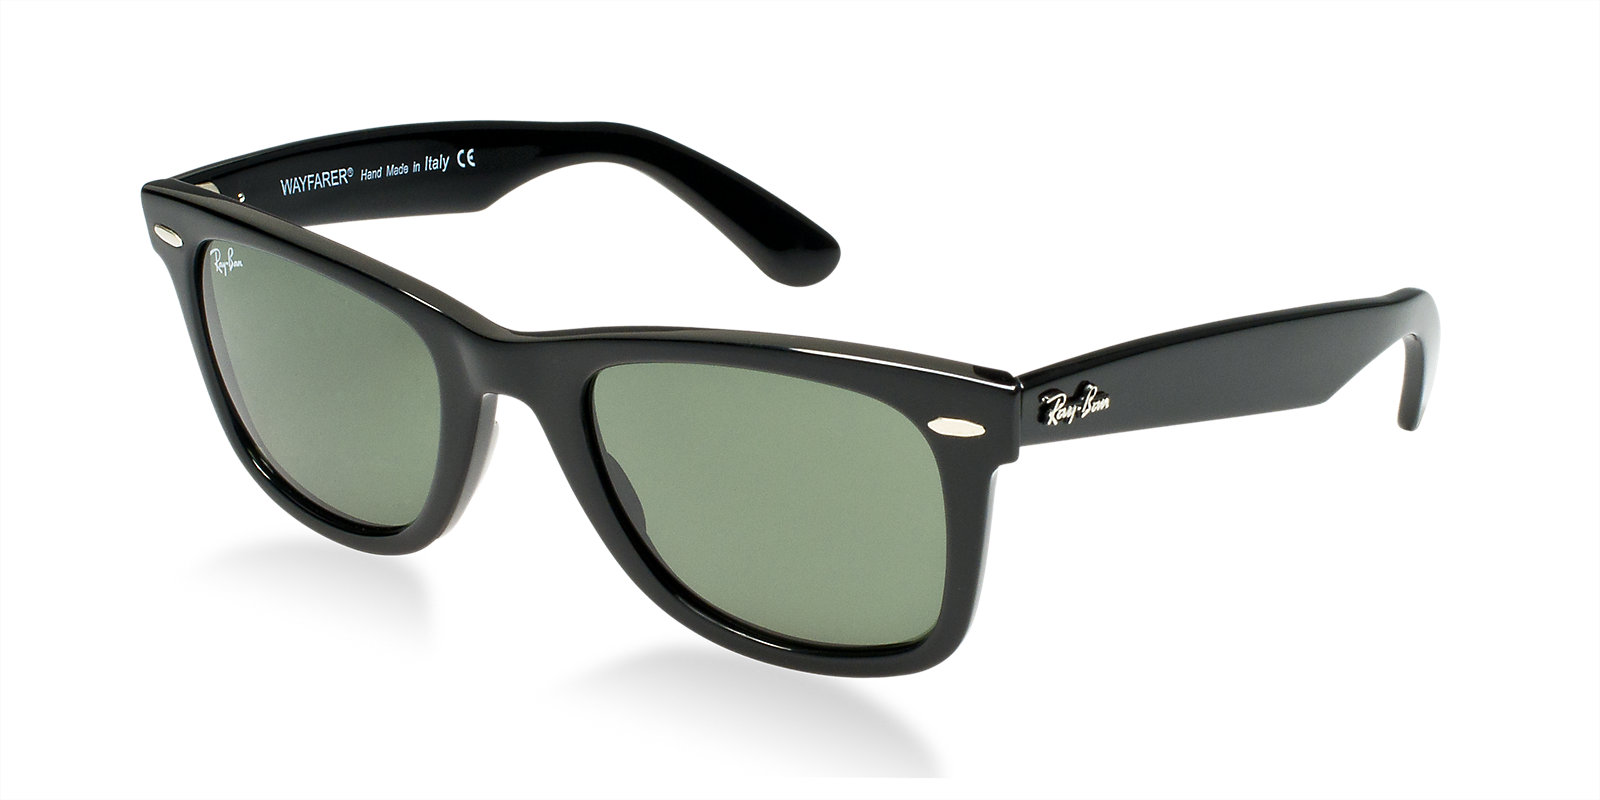 37fad9d02a Previous  Next. Previous  Next. RAY-BAN RB2140 901 BLACK CLASSIC WAYFARER  SUNGLASSES